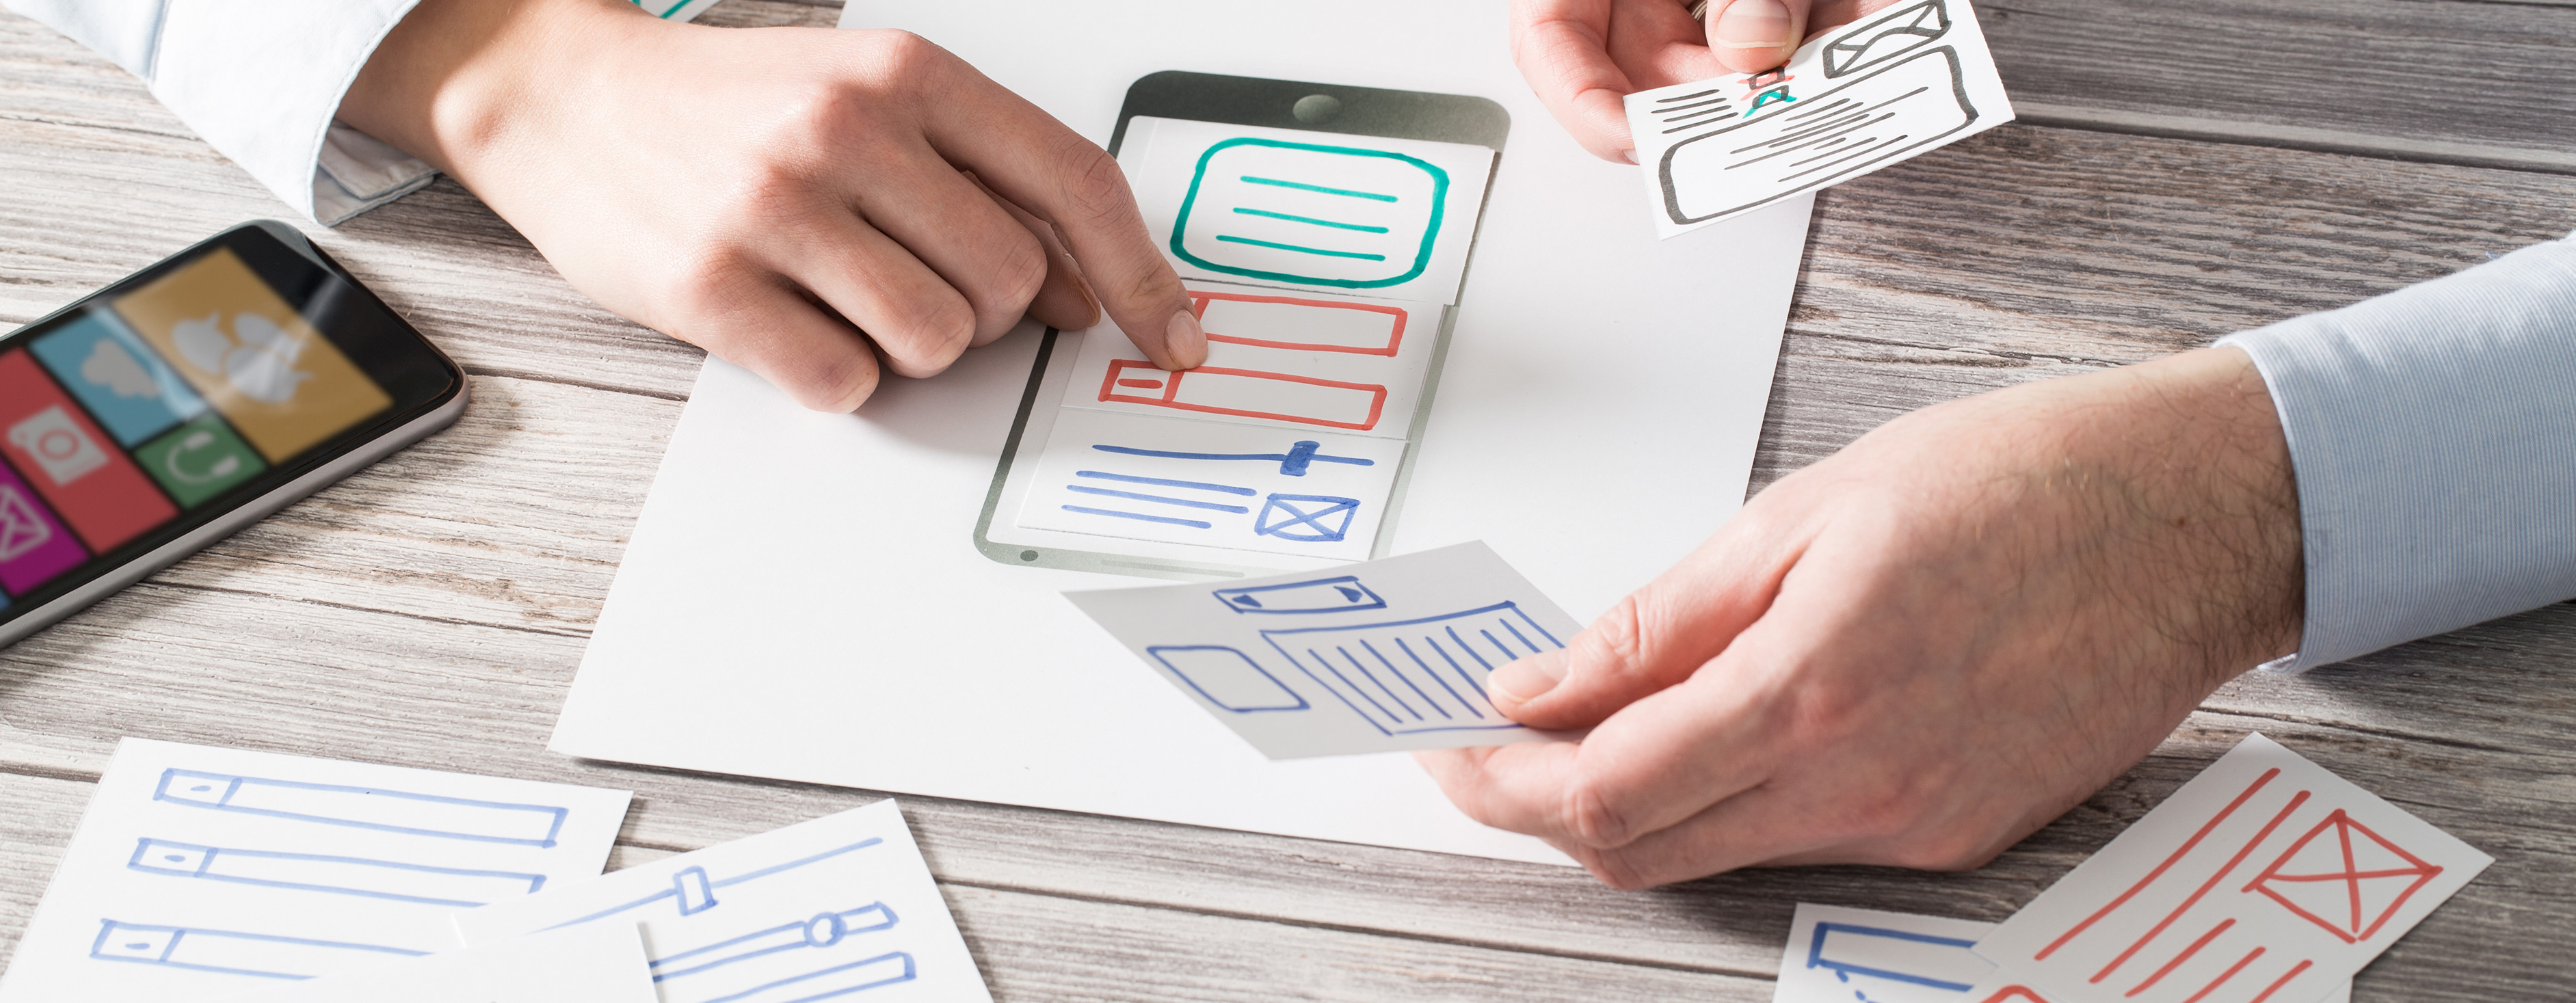 The importance of the planning and wireframe stage for any website